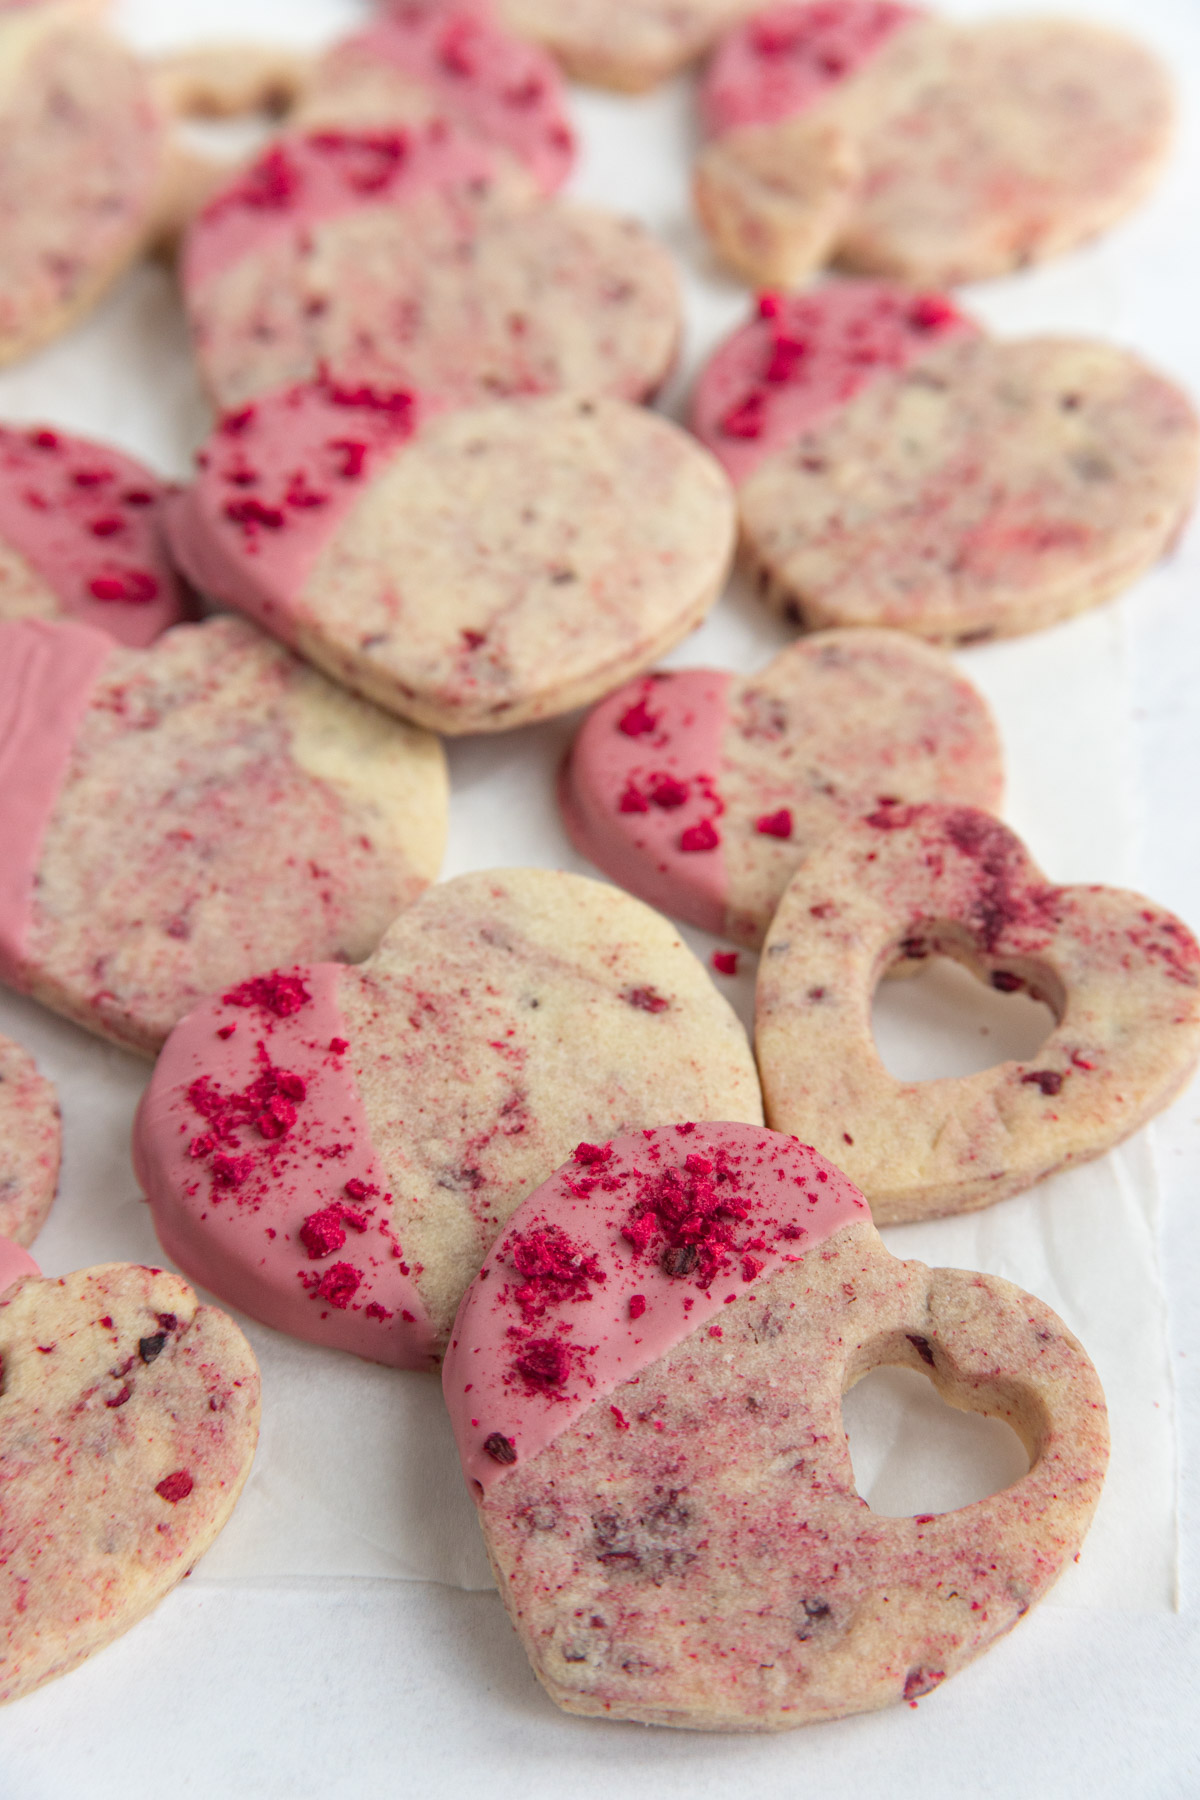 Raspberry Shortbread Cookies with Ruby Chocolate Glaze